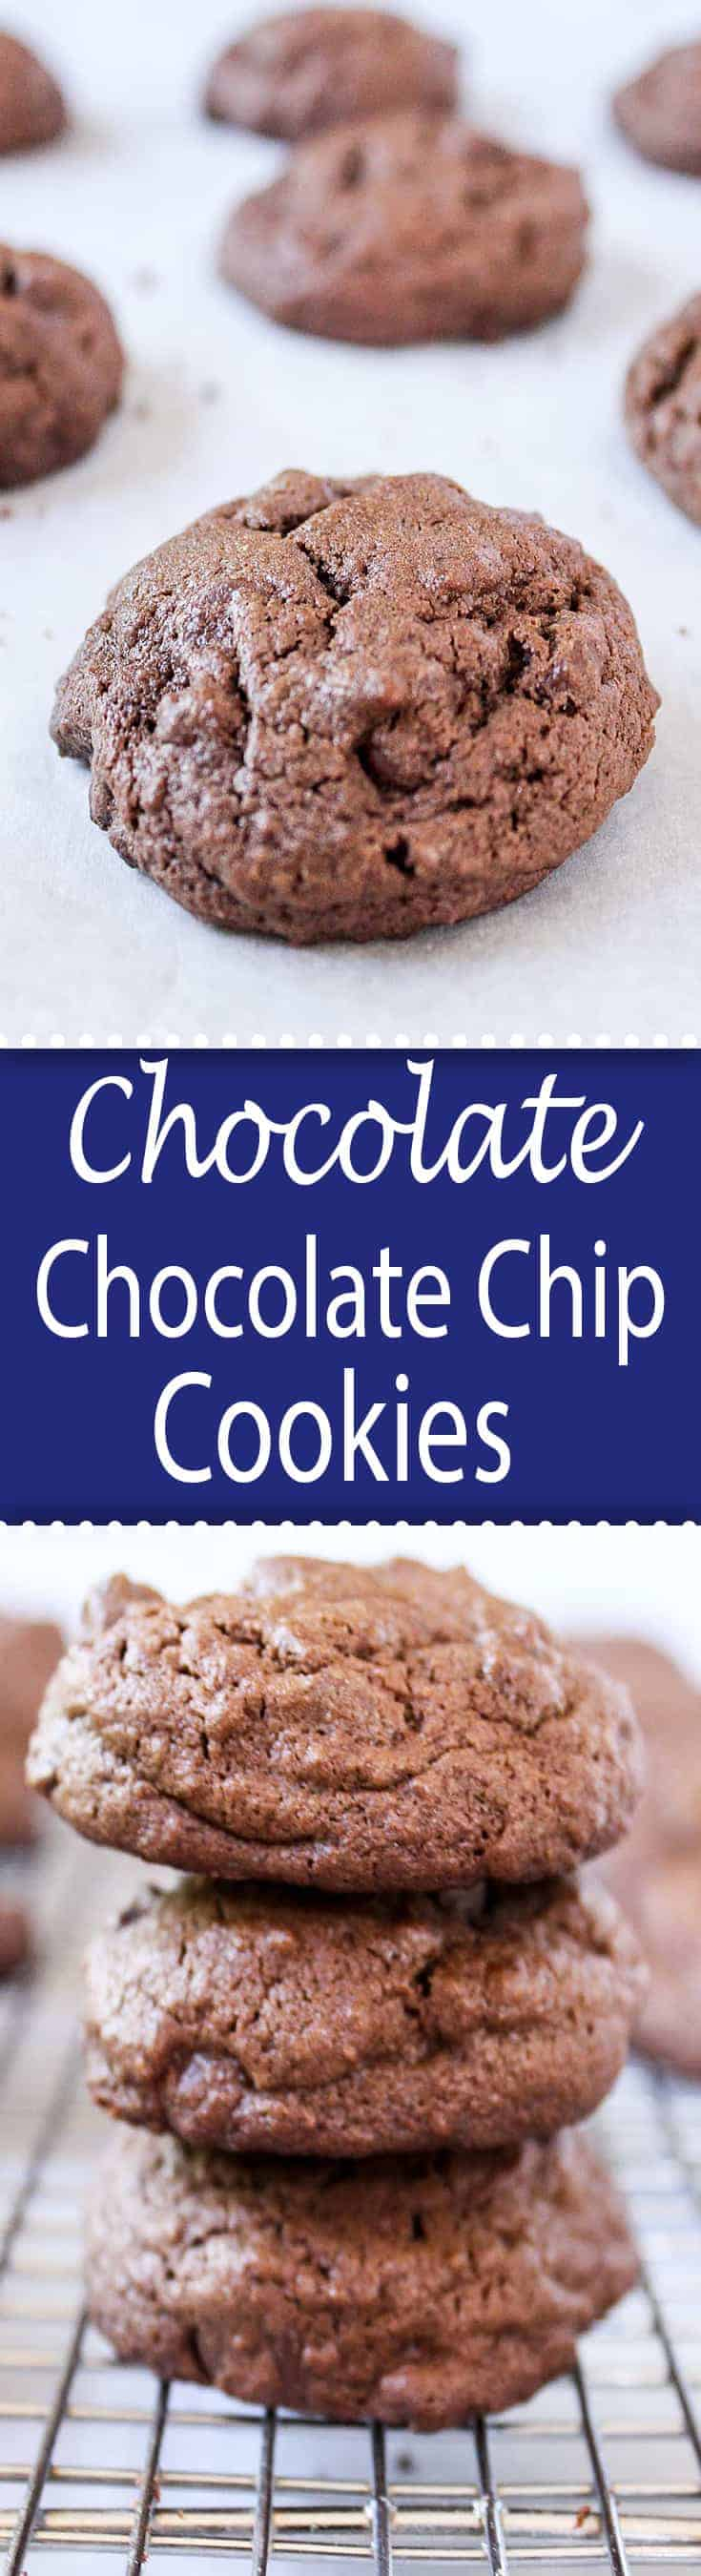 Chocolate Chocolate Chip Cookies are a traditional chocolate chip cookie with chocolate added to the batter. Double the chocolate! #cookies #chocolatechip